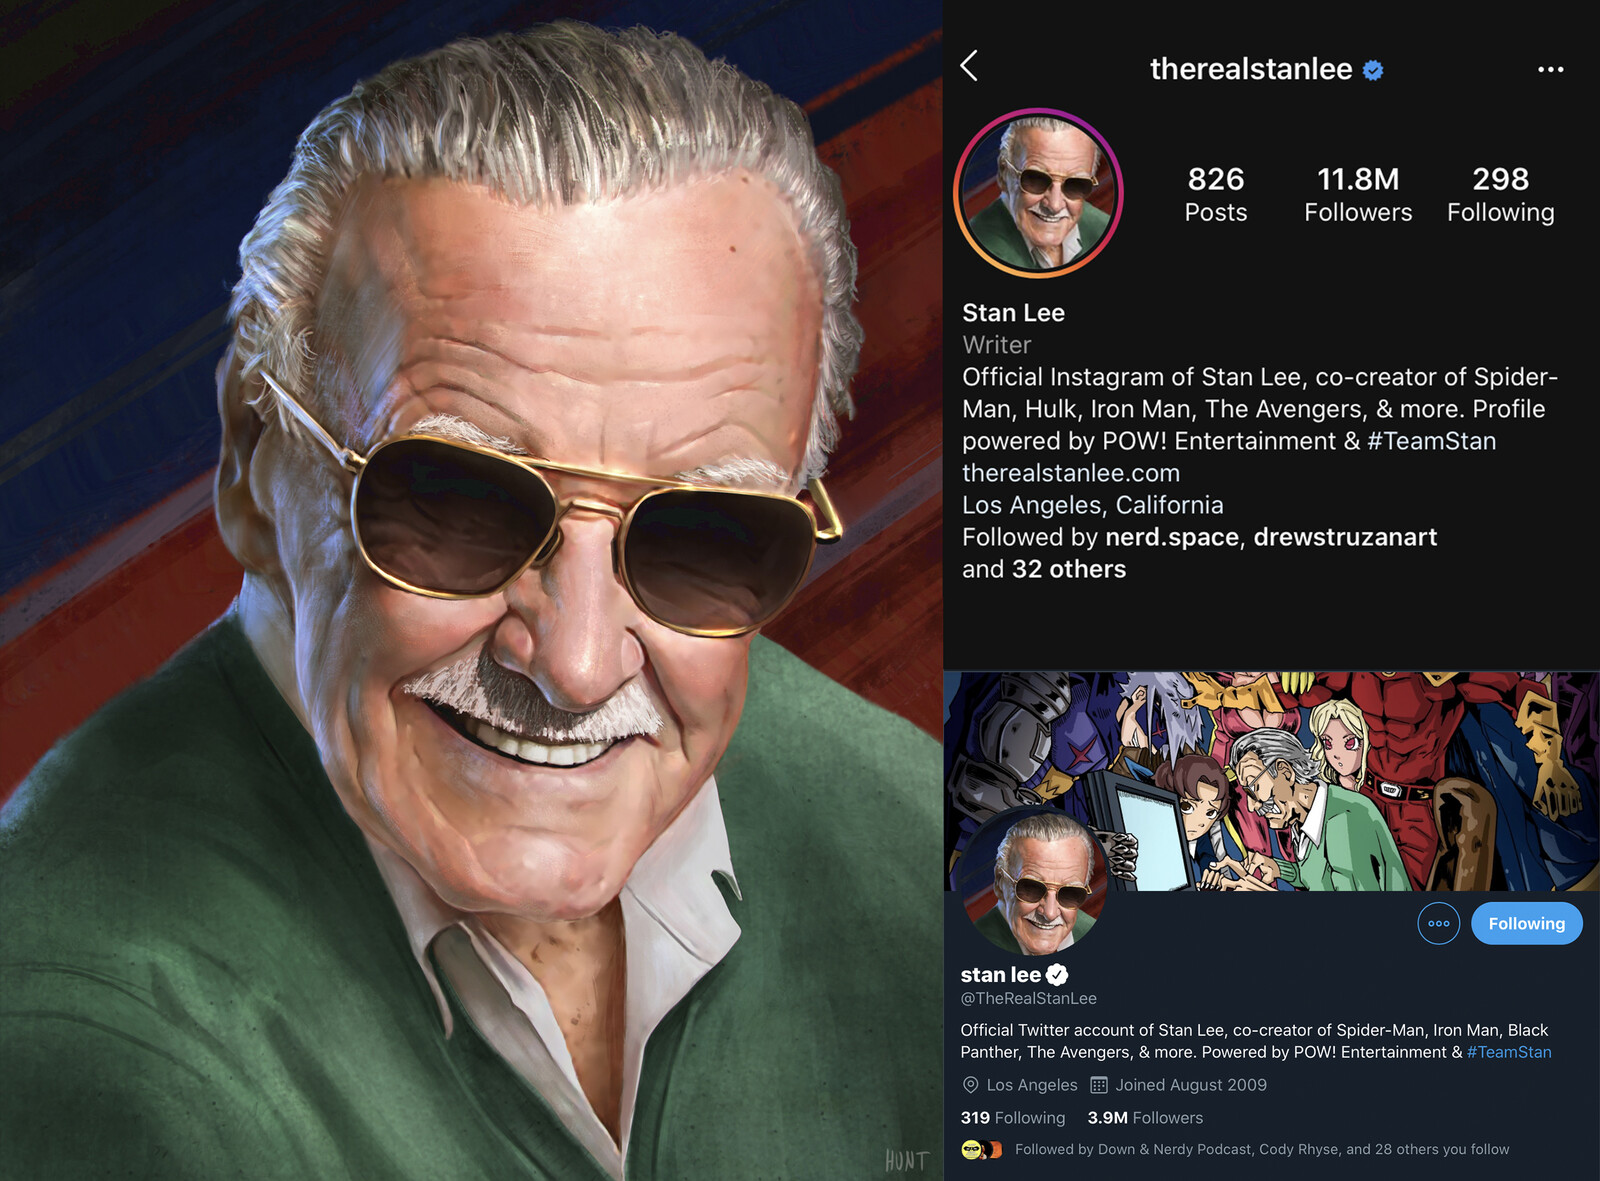 Stan Lee Social Media painting